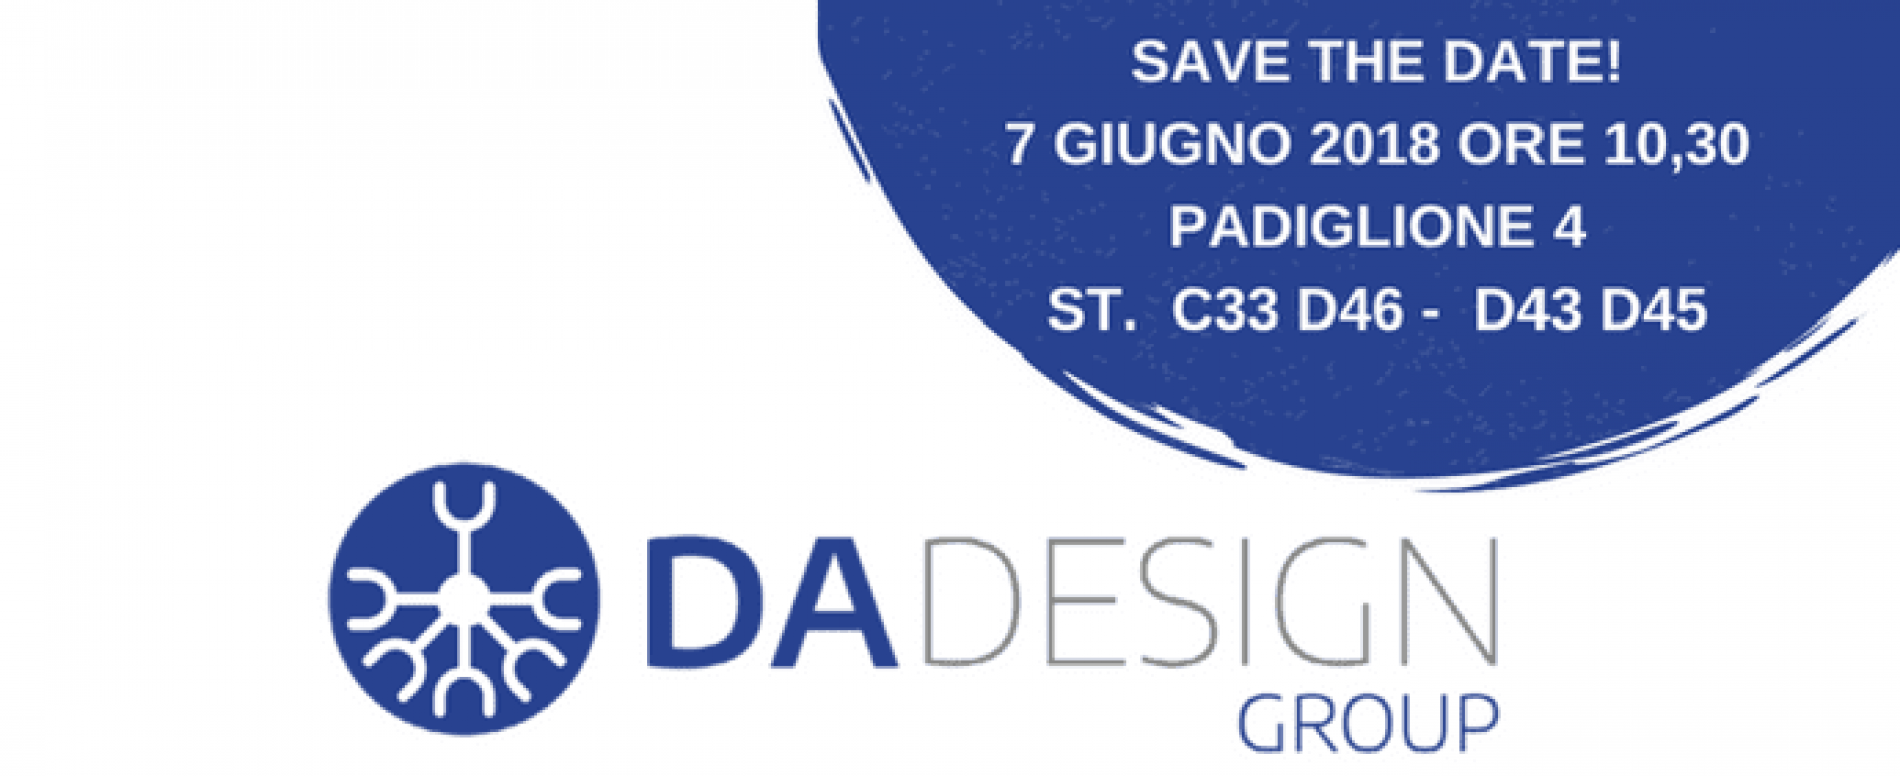 Venditalia 2018. In programma oggi allo stand DA DESIGN GROUP